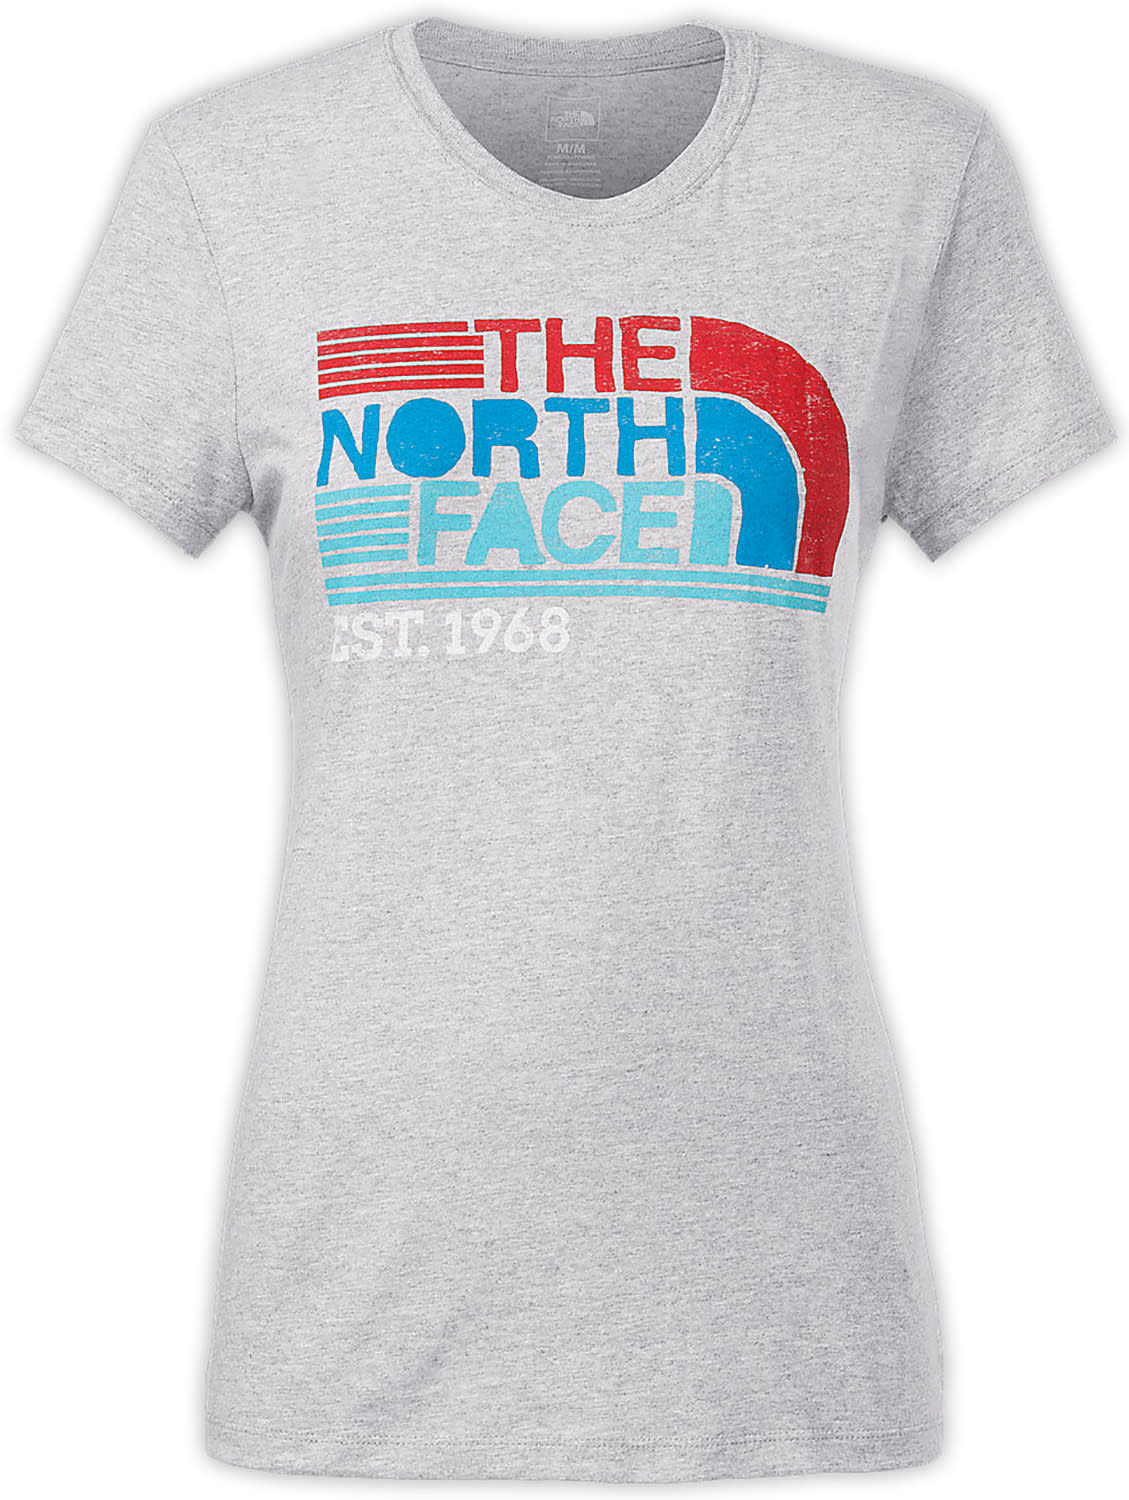 On Sale The North Face Boardwalk Graphic T Shirt Womens